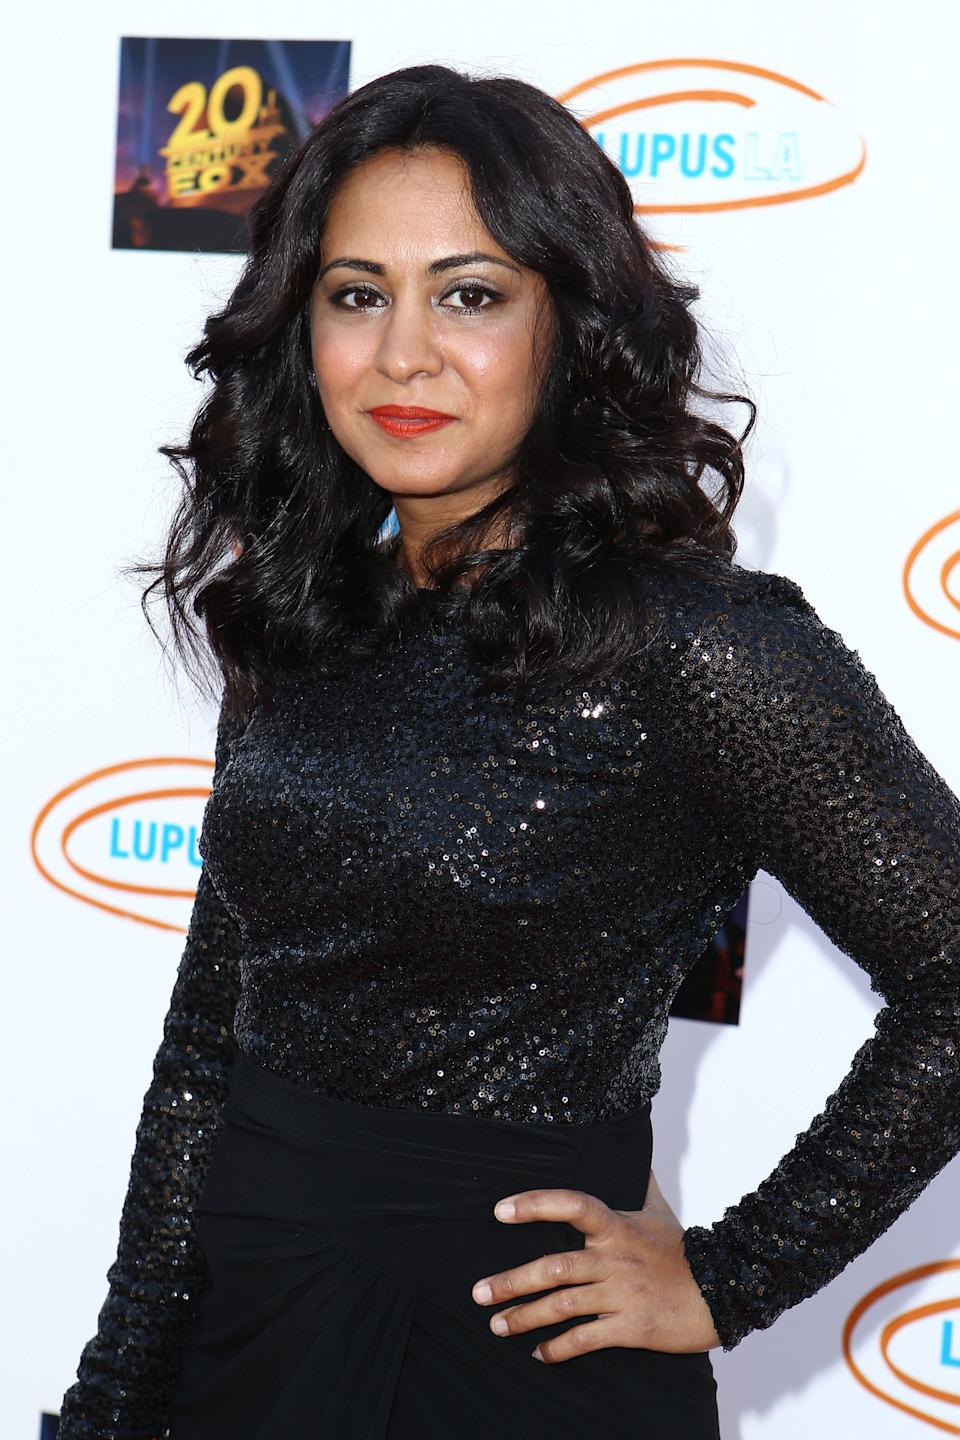 Parminder Nagra arrives at the Lupus LA's Orange Ball: A Night Of Superheroes at Fox Studio Lot on June 6, 2015 in Century City, California.  (Photo by Leon Bennett/WireImage)